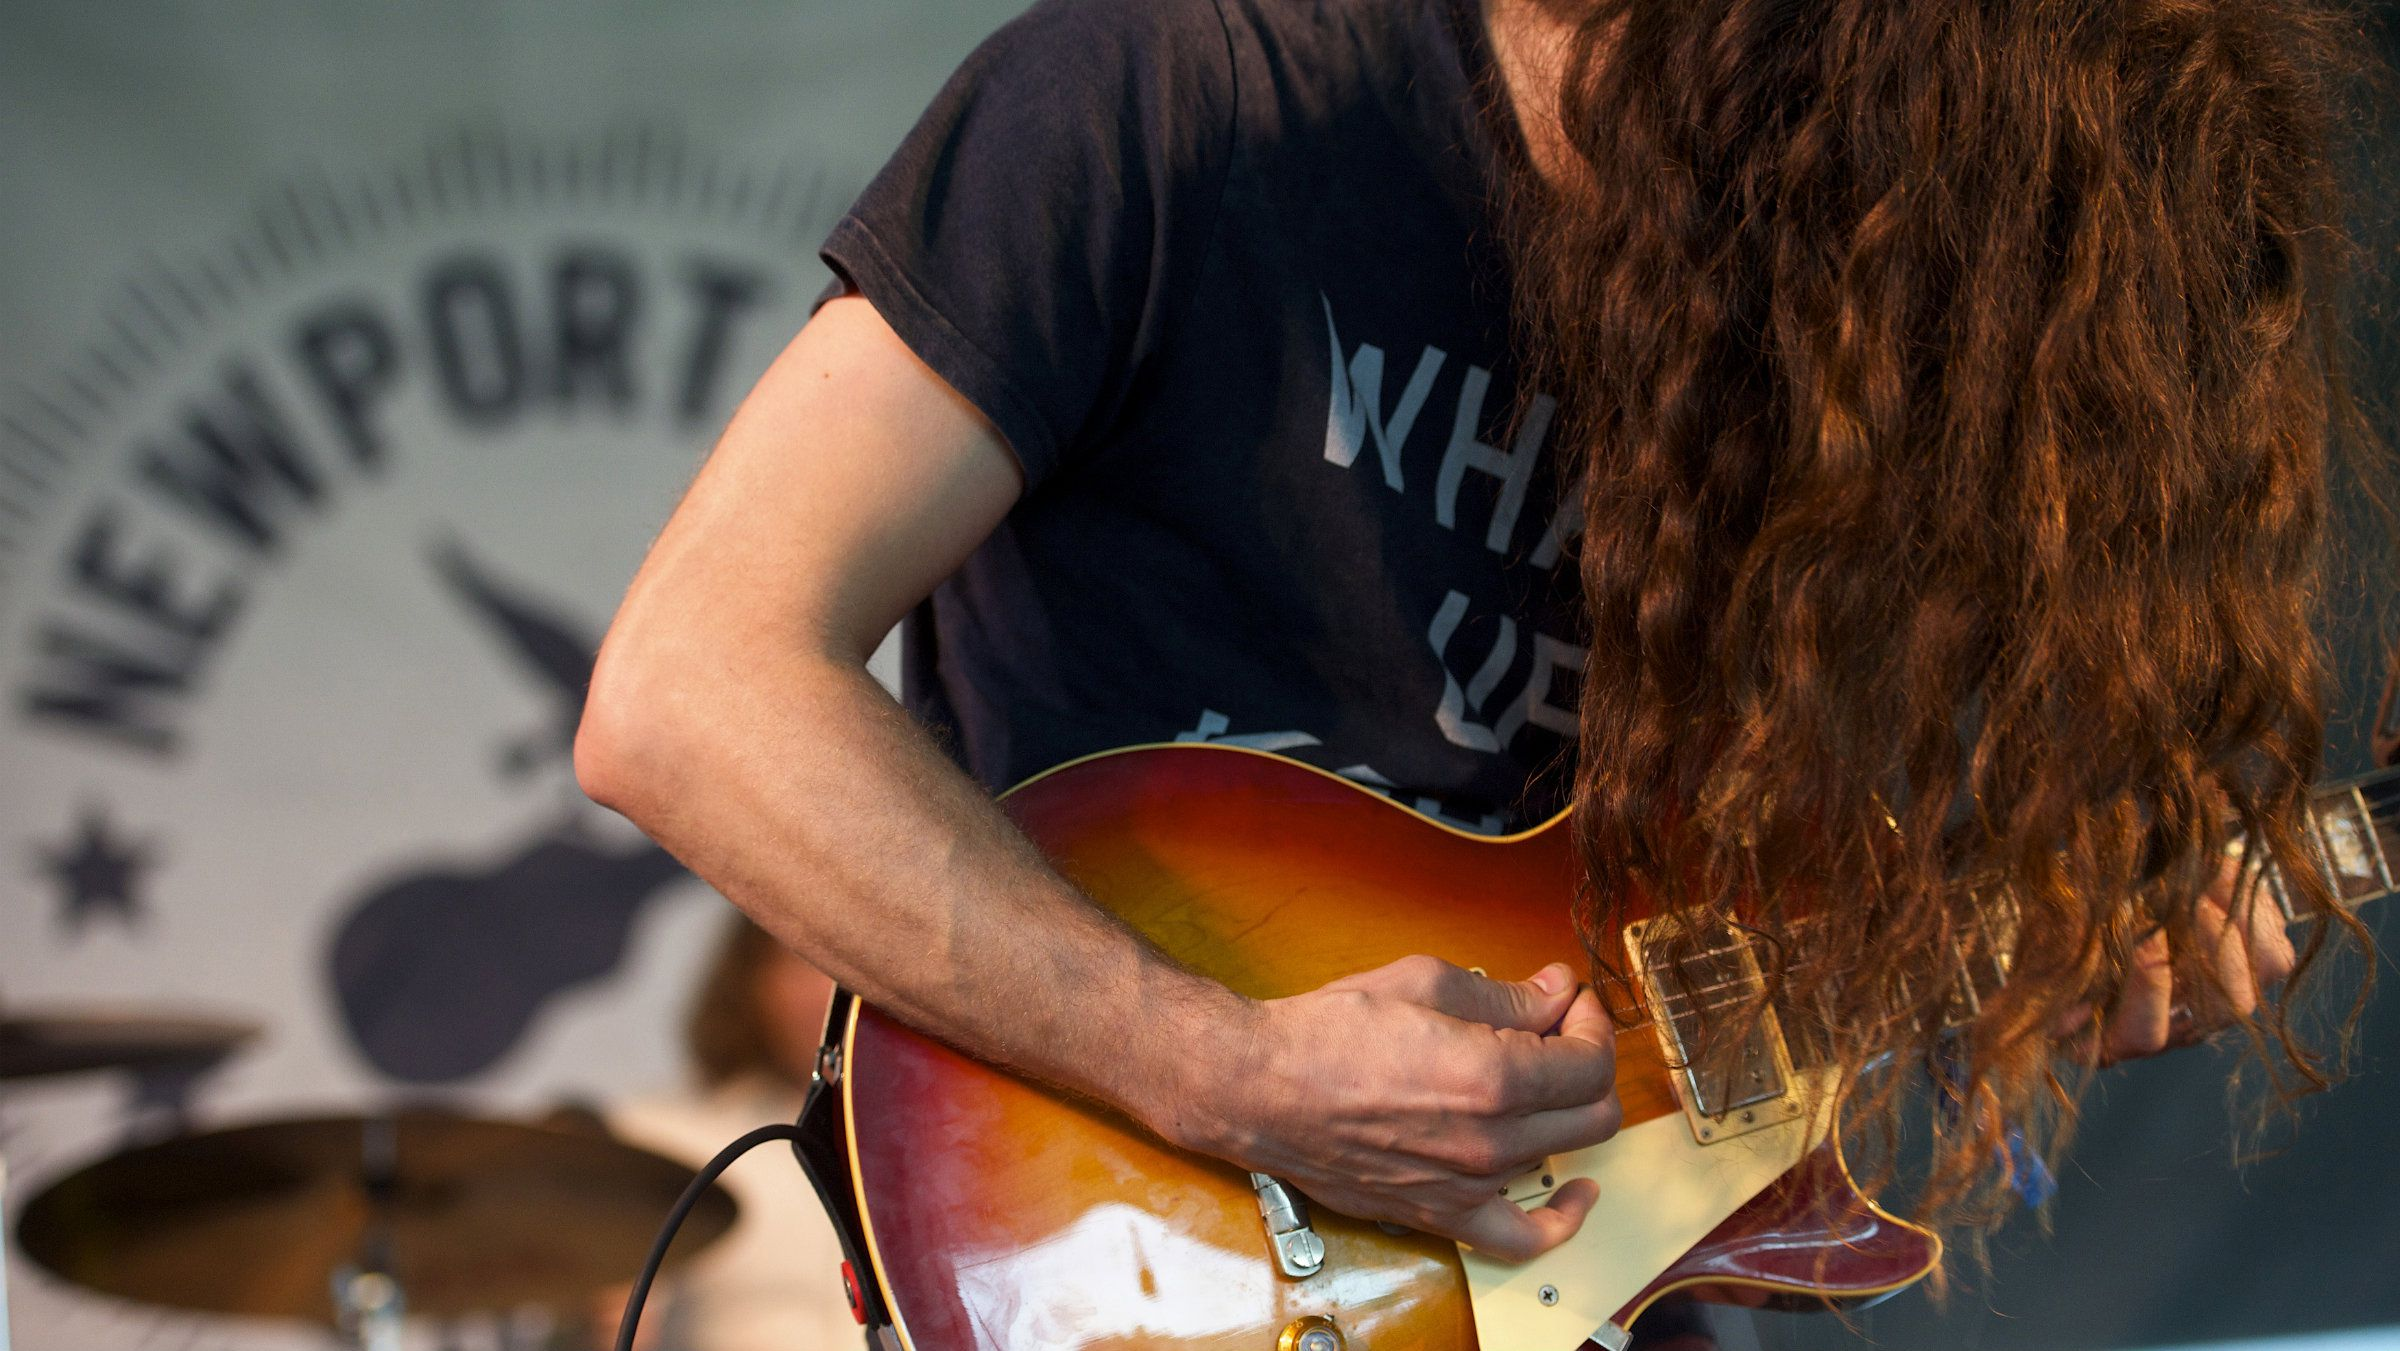 Singer Kurt Vile and his backing band The Violators (unseen) perform during the Newport Folk Festival in Rhode Island